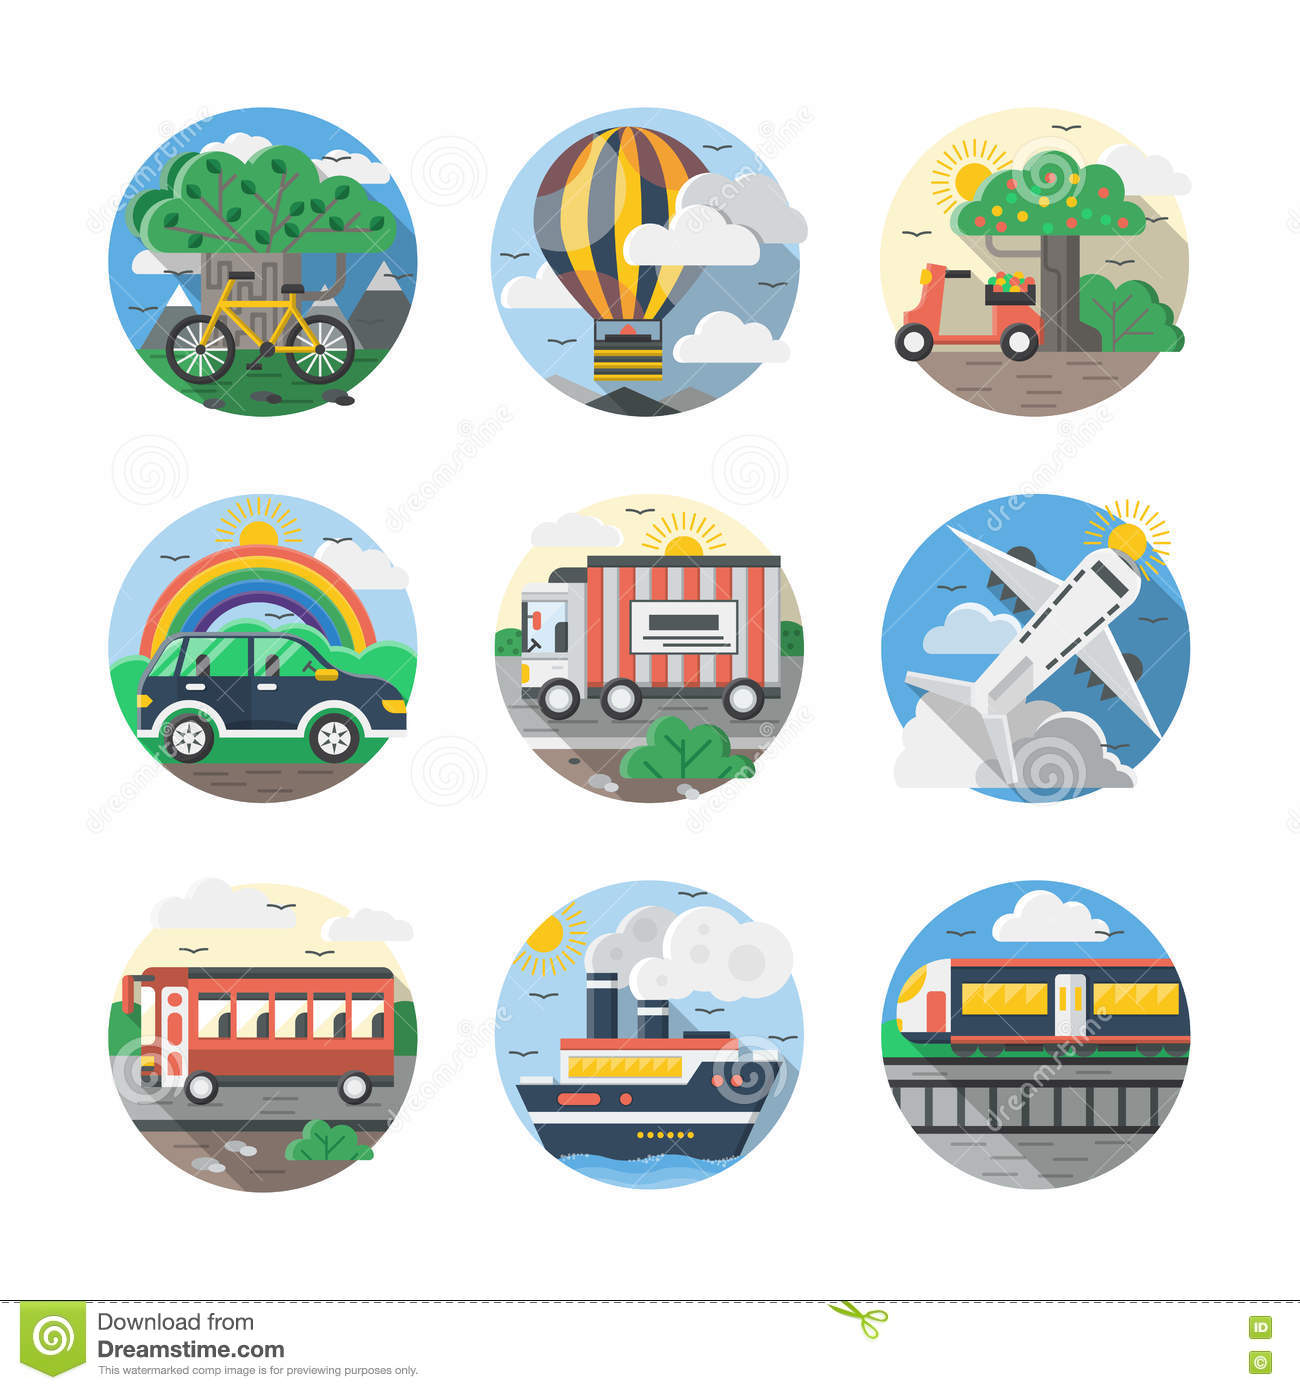 Mode of transport color detailed icons set Royalty Free Stock Photos